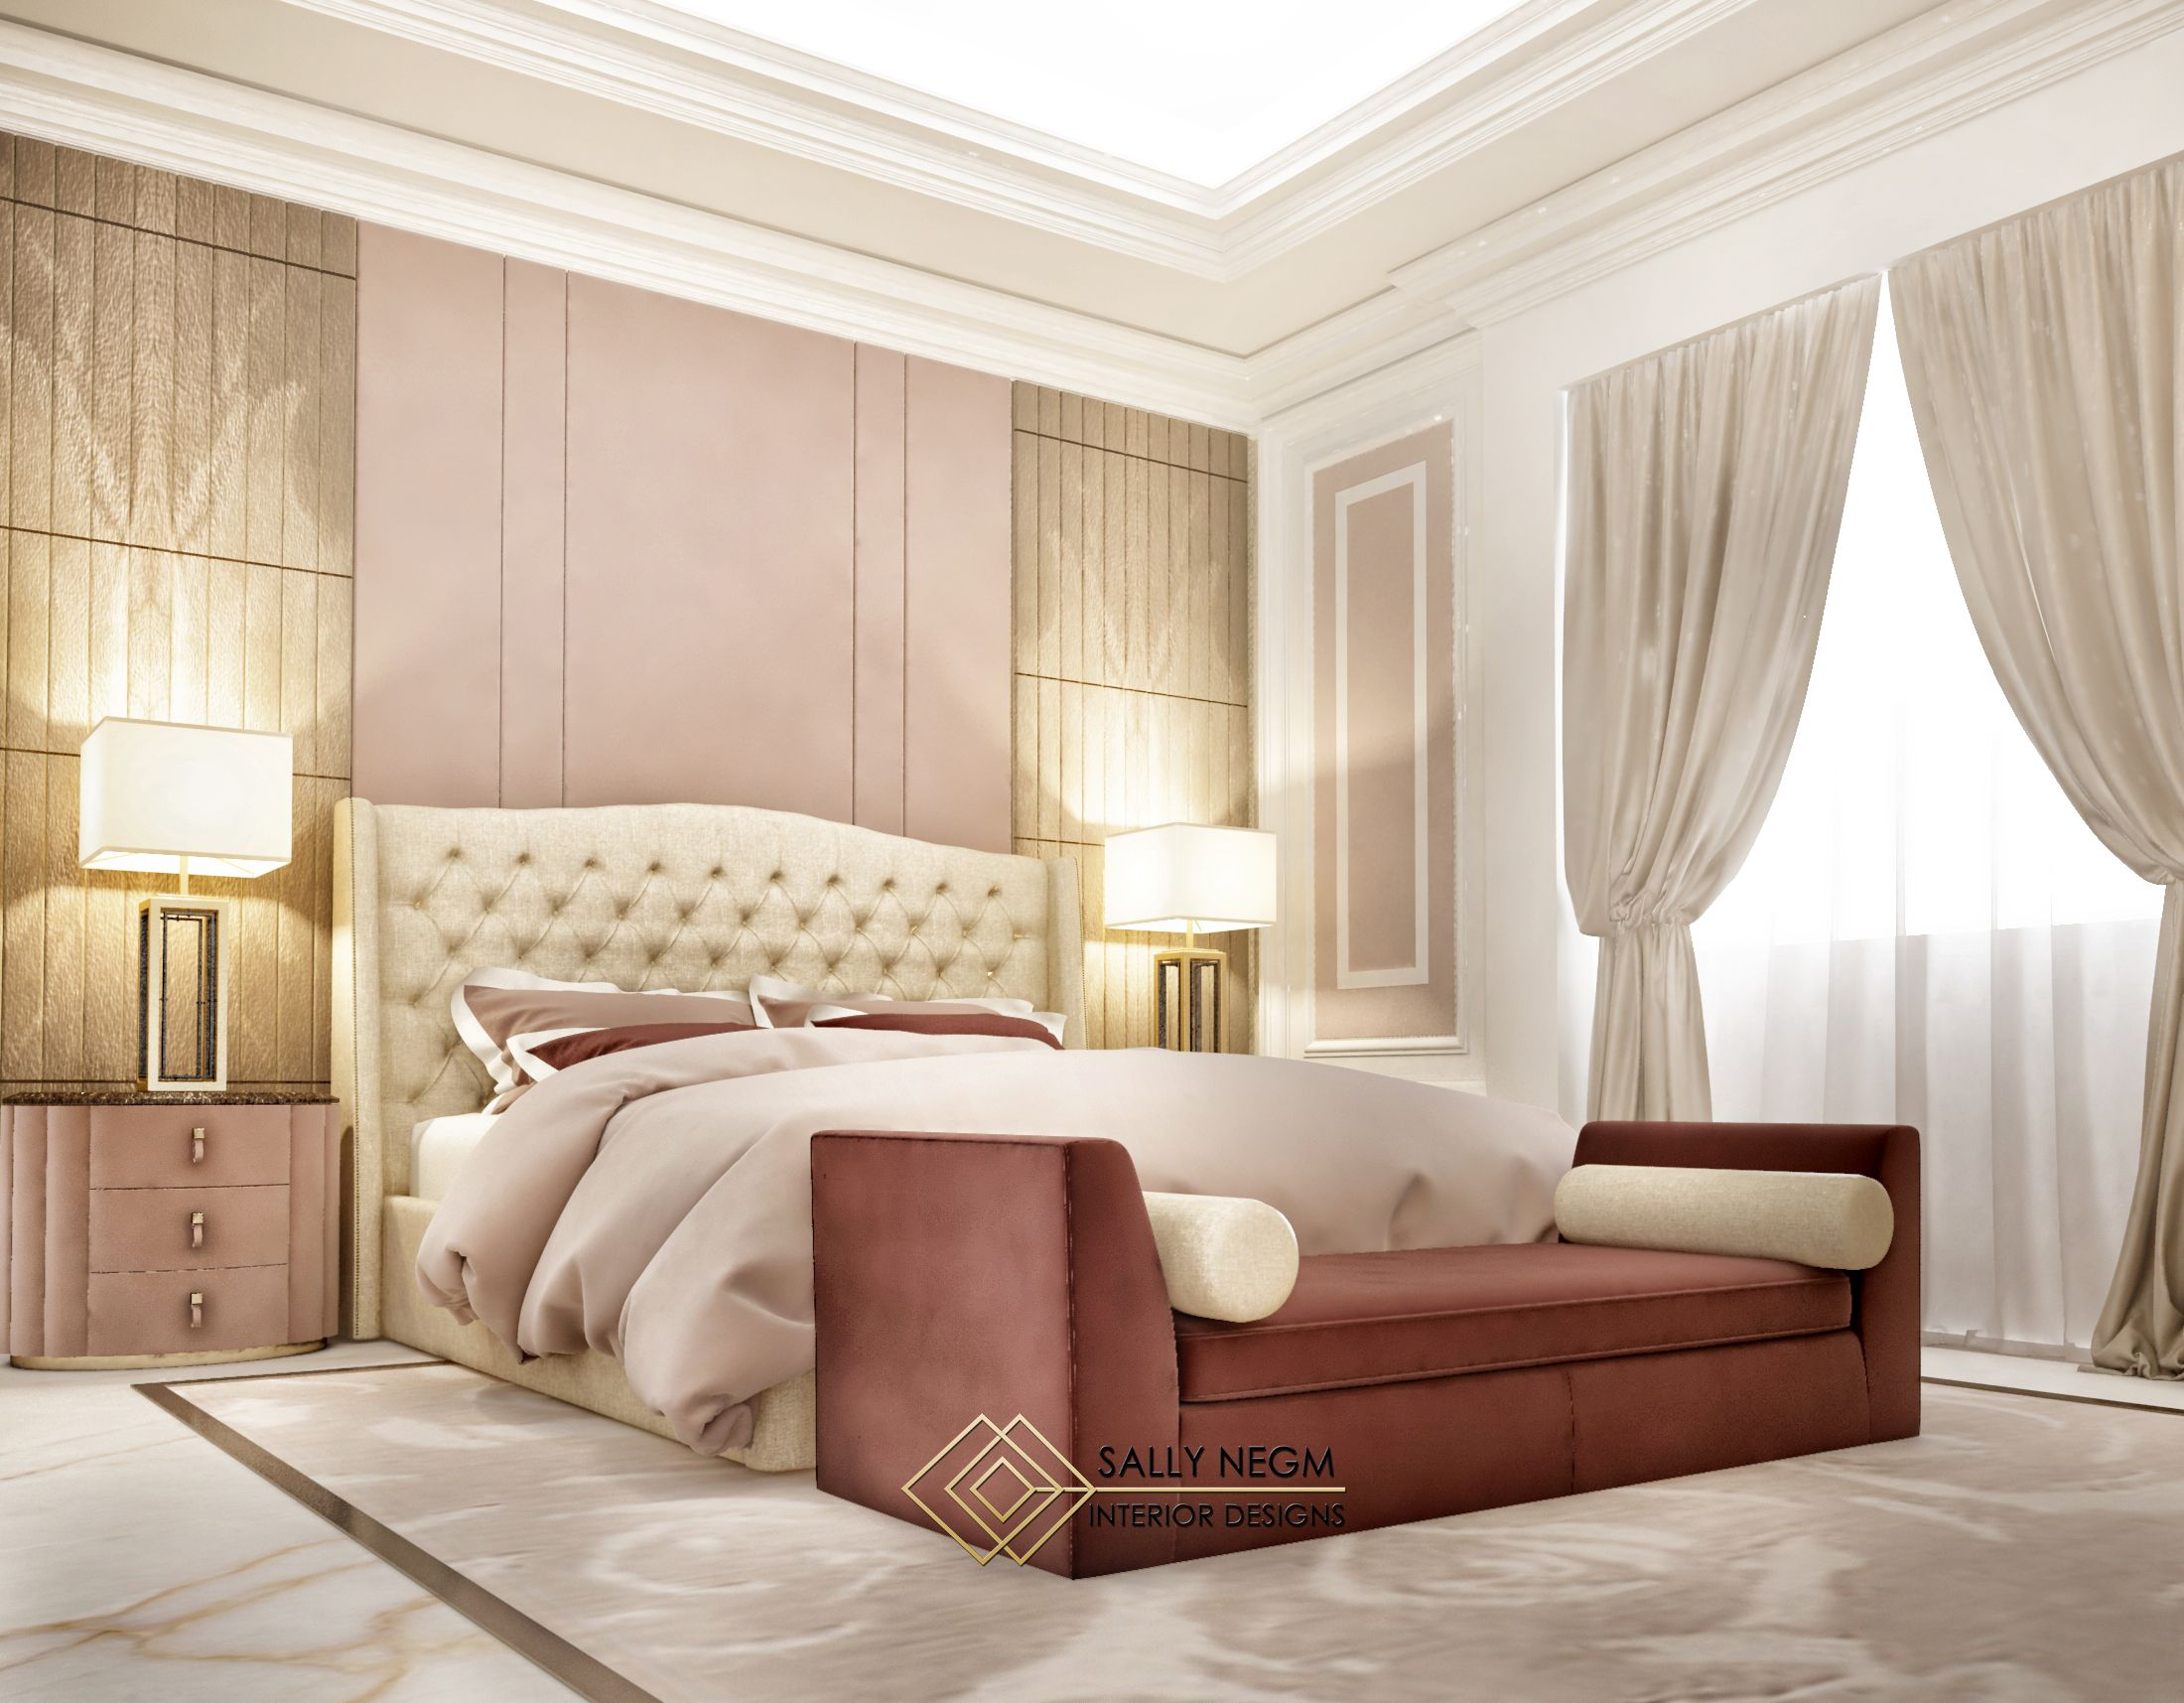 Luxury Modern Master Bedroom Interior Design In Dust Rose With The Bold  Golden Shades #luxury